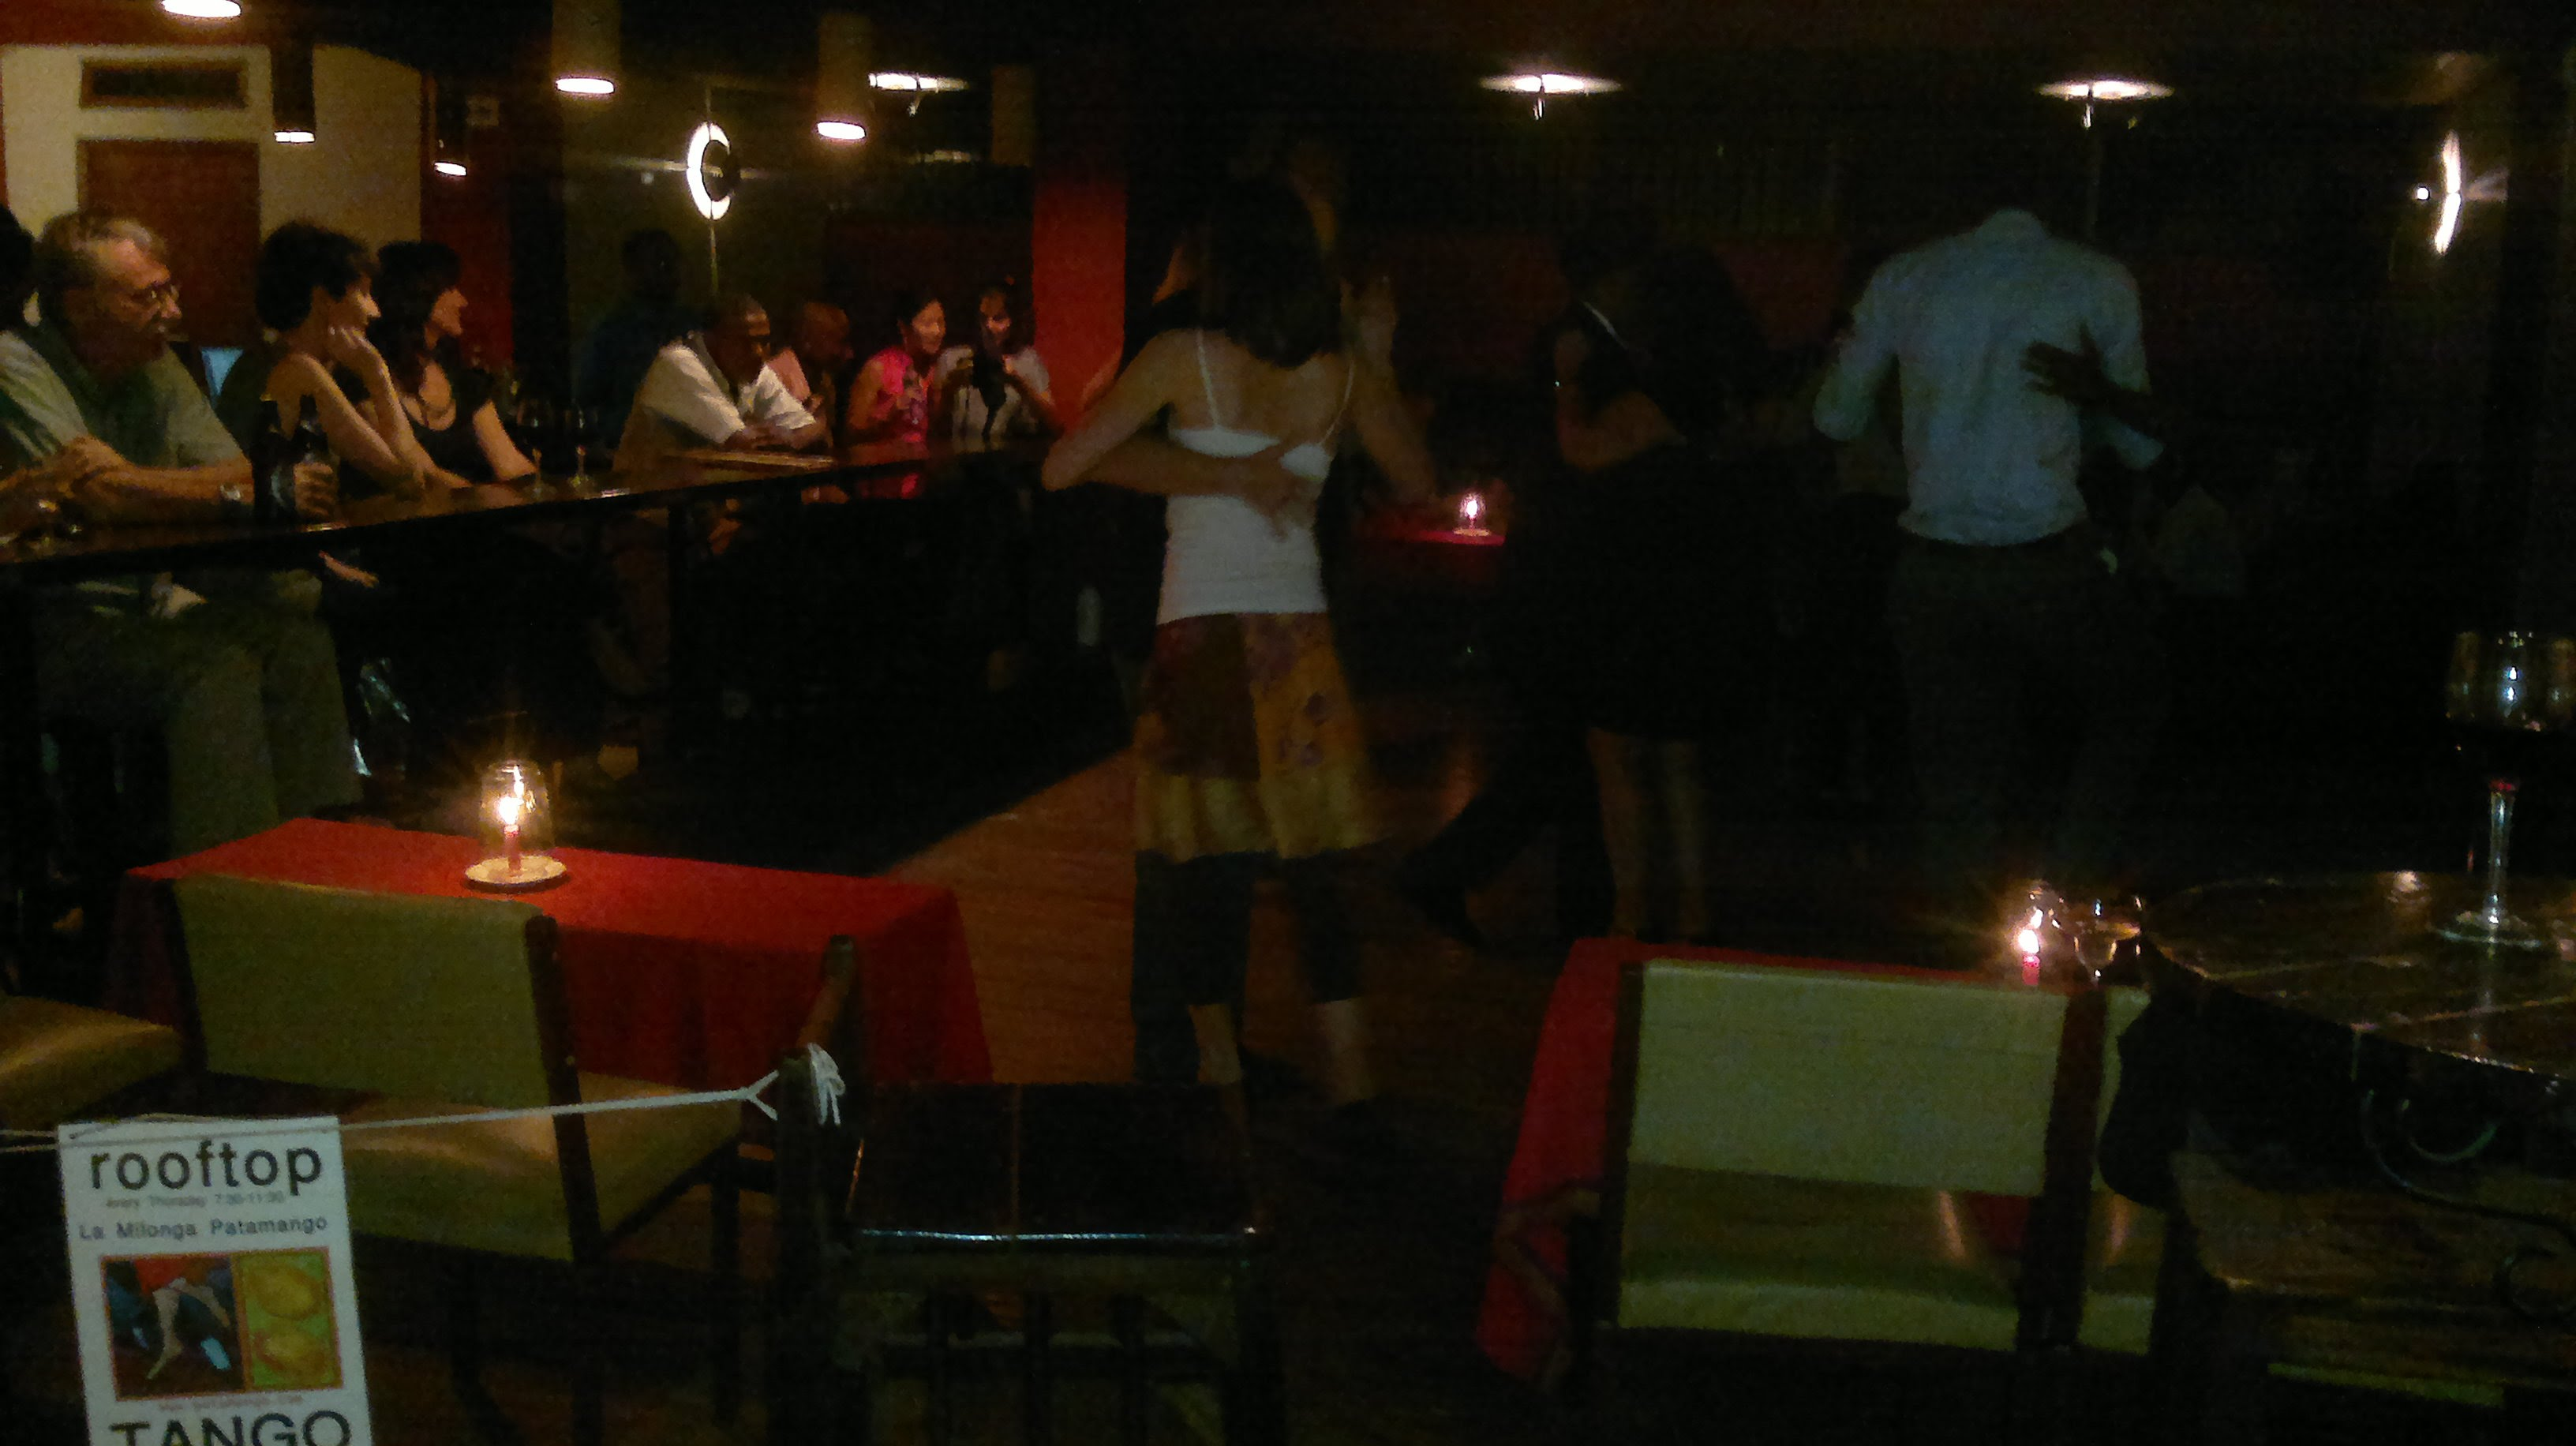 La Milonga Patamango at Sippers Lounge on Thu 03 April 2014